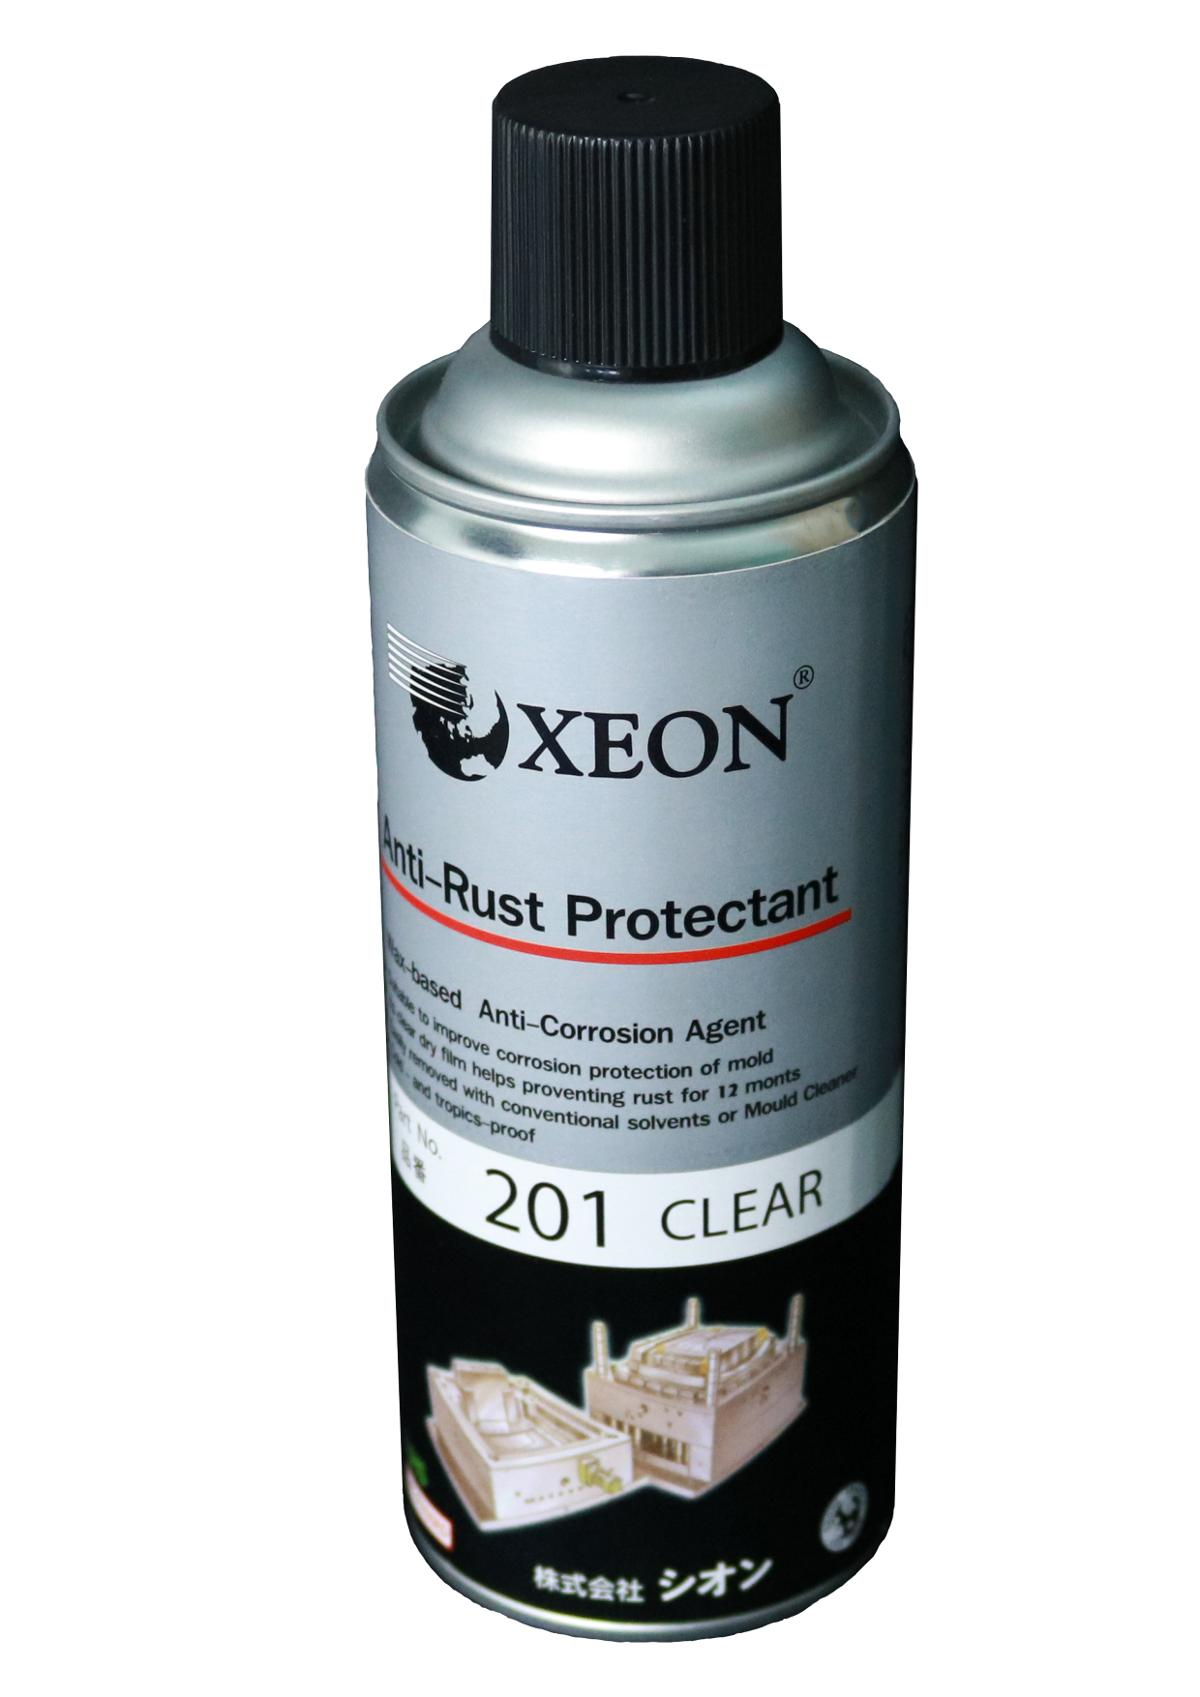 XEON 201 Anti-Rust Protectant (Clear)